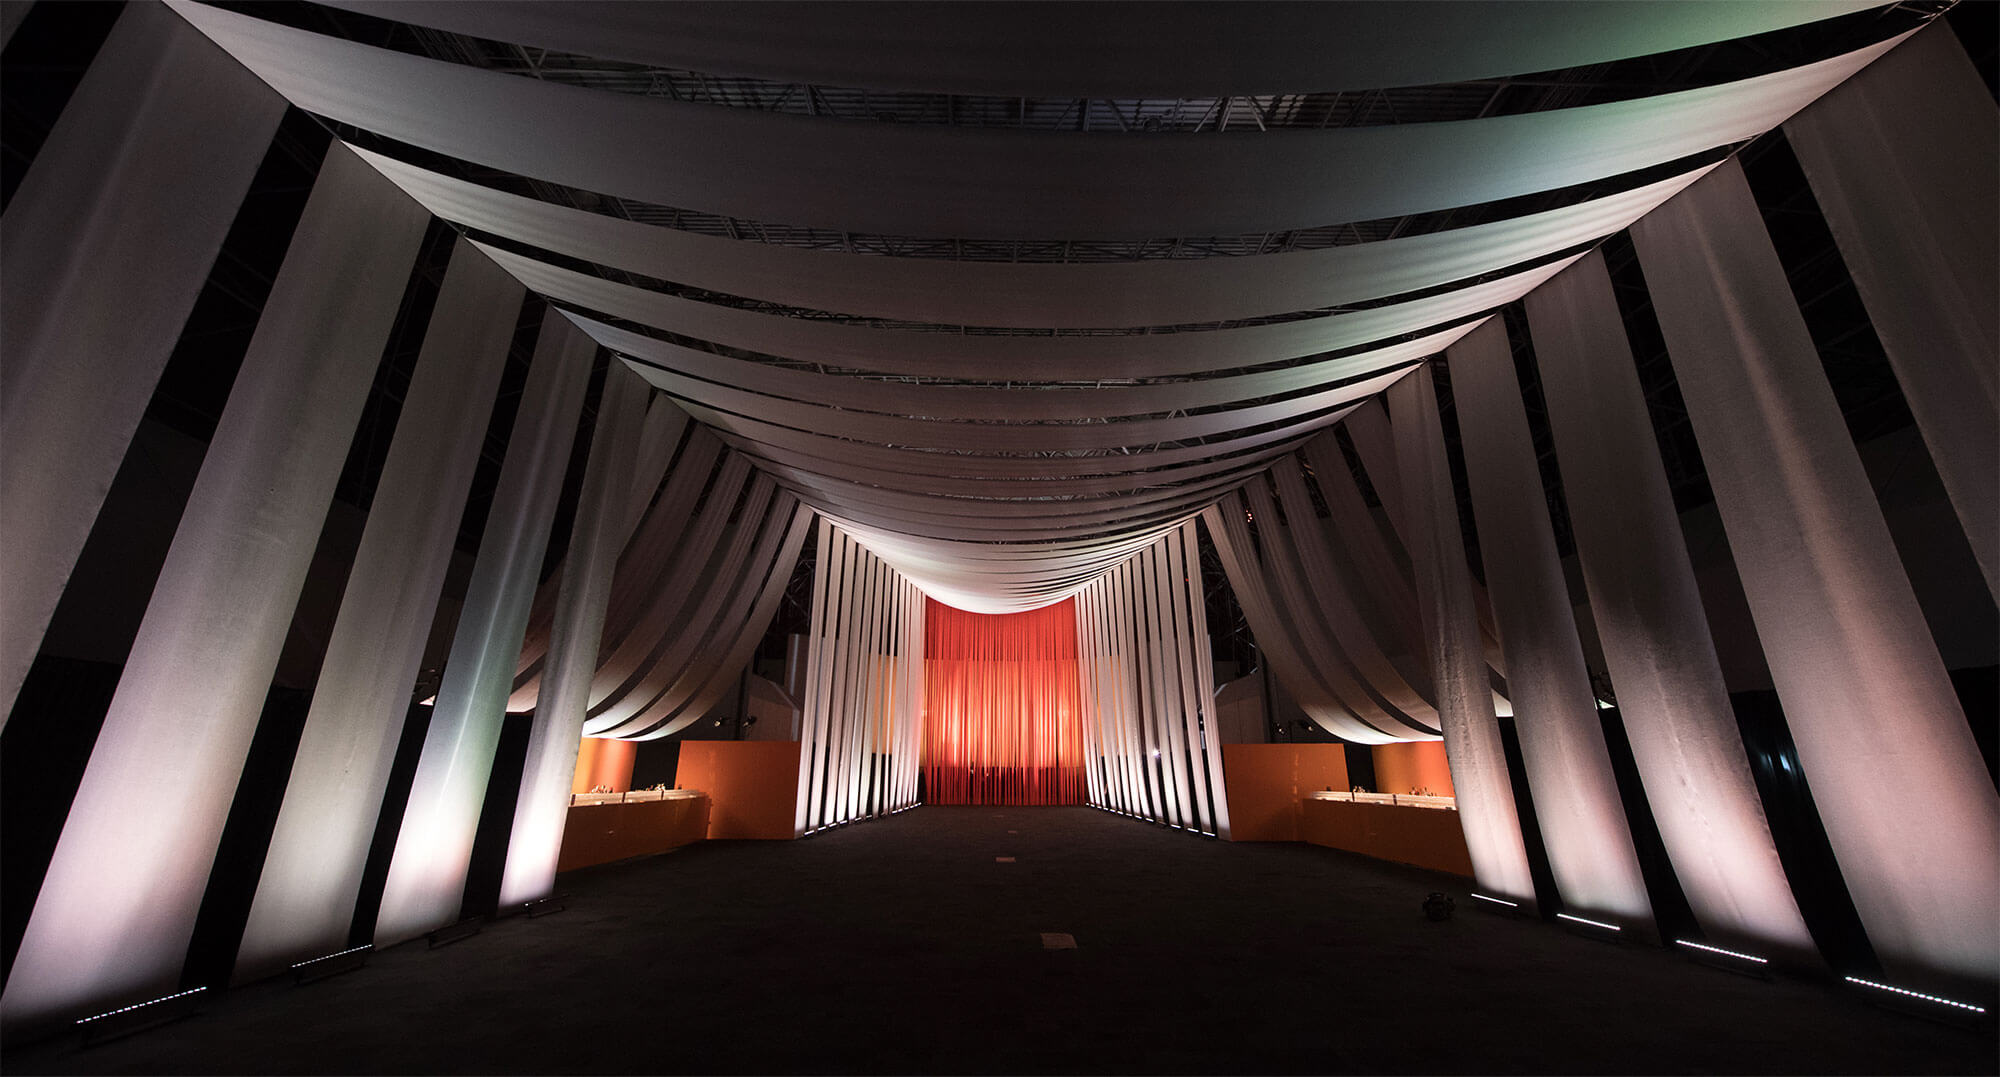 Long view of the Sunbrella Hall at Interior Design's Hall of Fame.